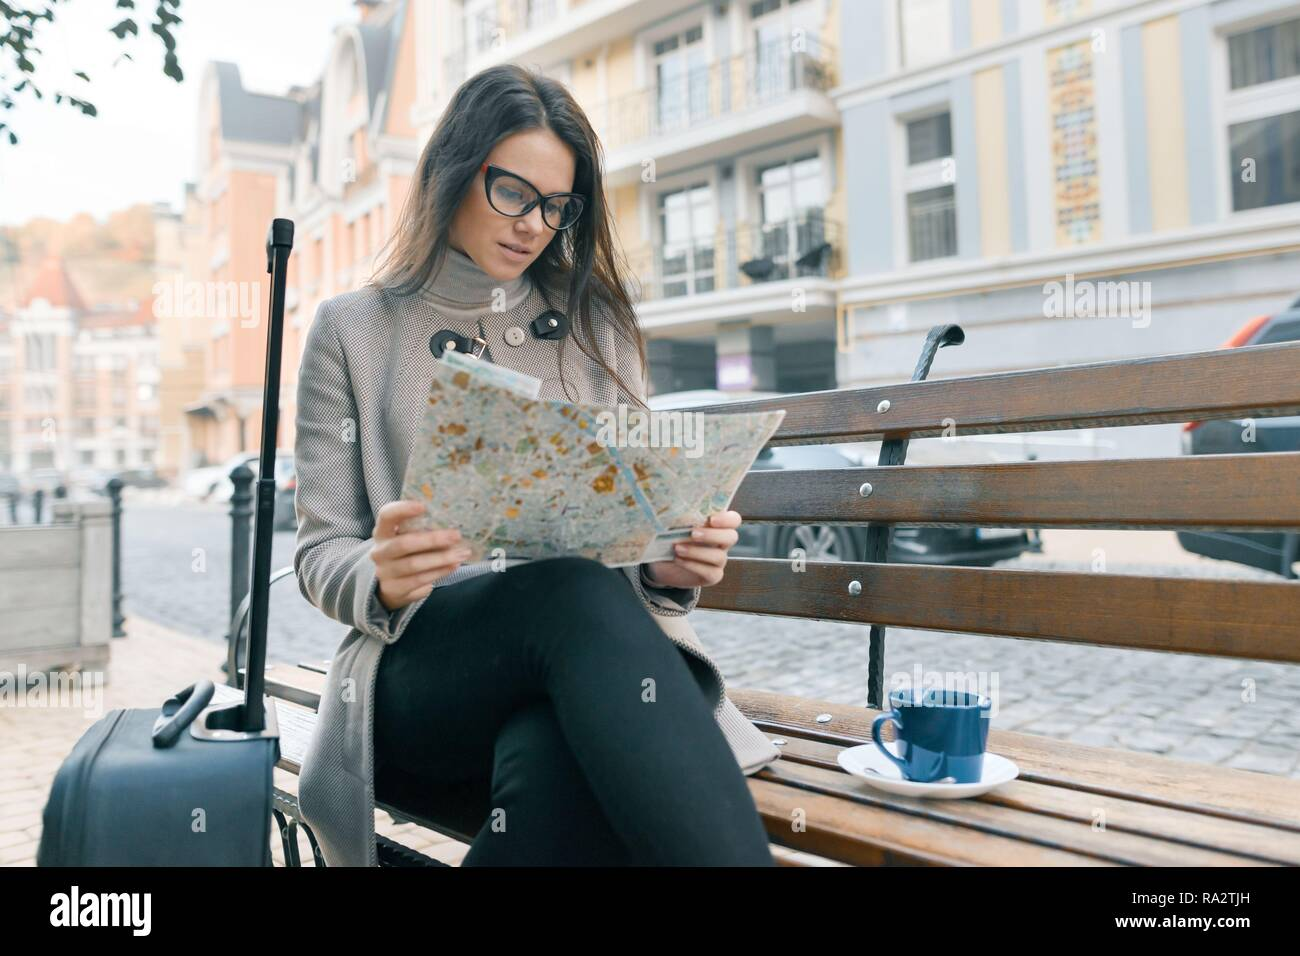 Young beautiful woman sitting on bench with travel suitcase and reading city map, drinks coffee, city street background. - Stock Image